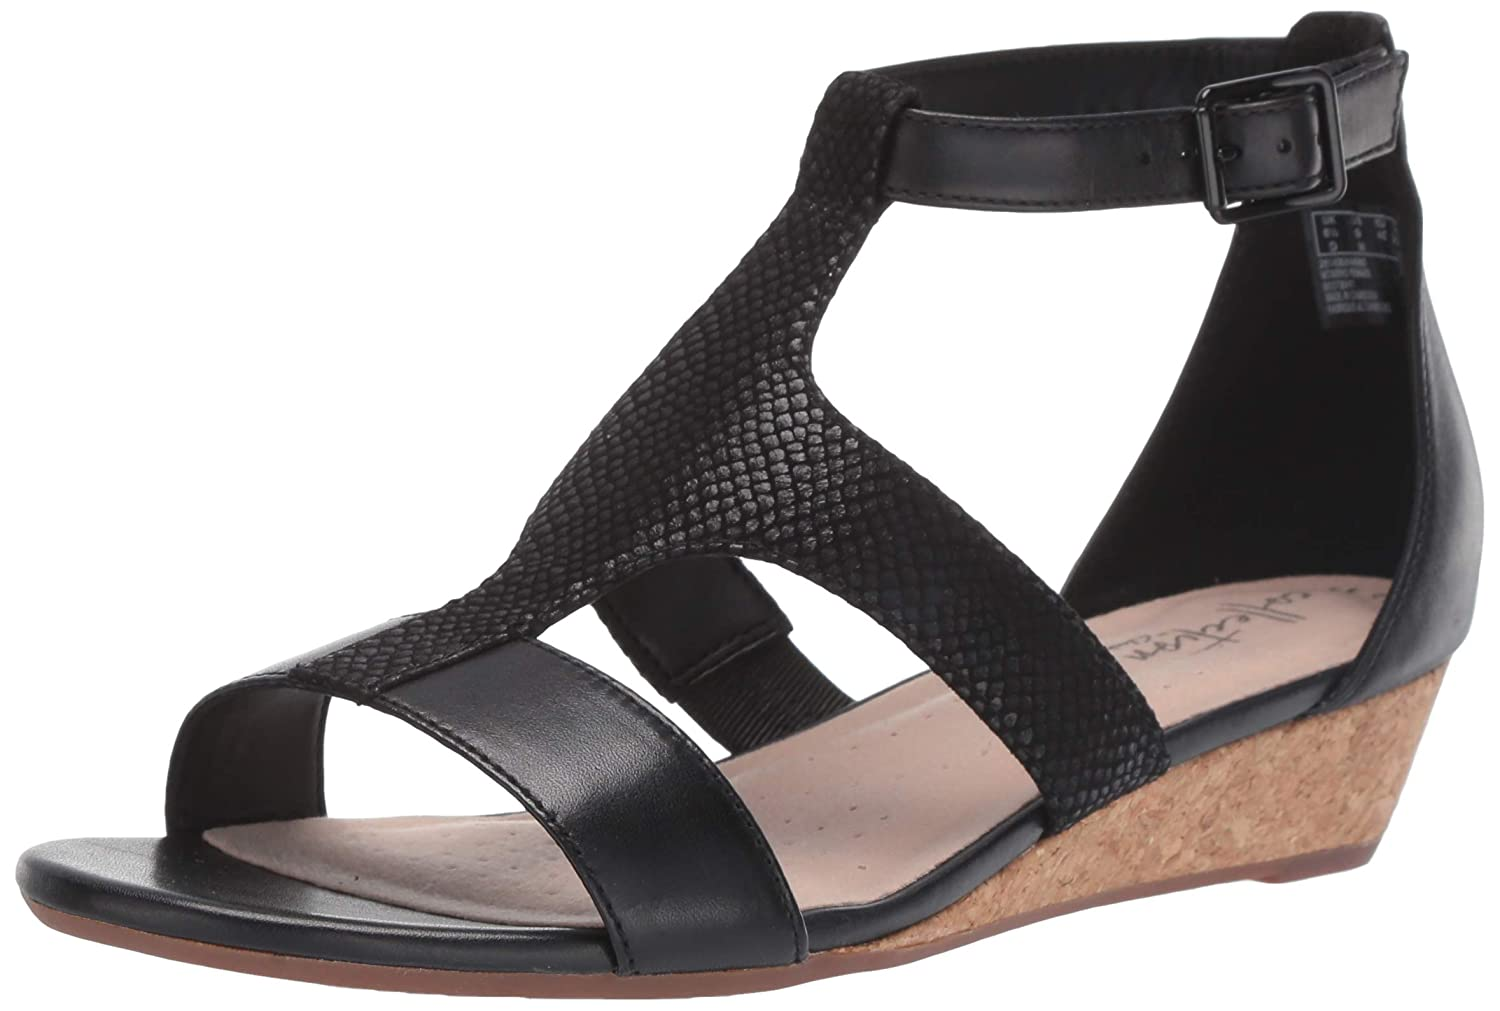 bd9cc32a6da8 Amazon.com  CLARKS Women s Abigail Lily Wedge Sandal  Shoes